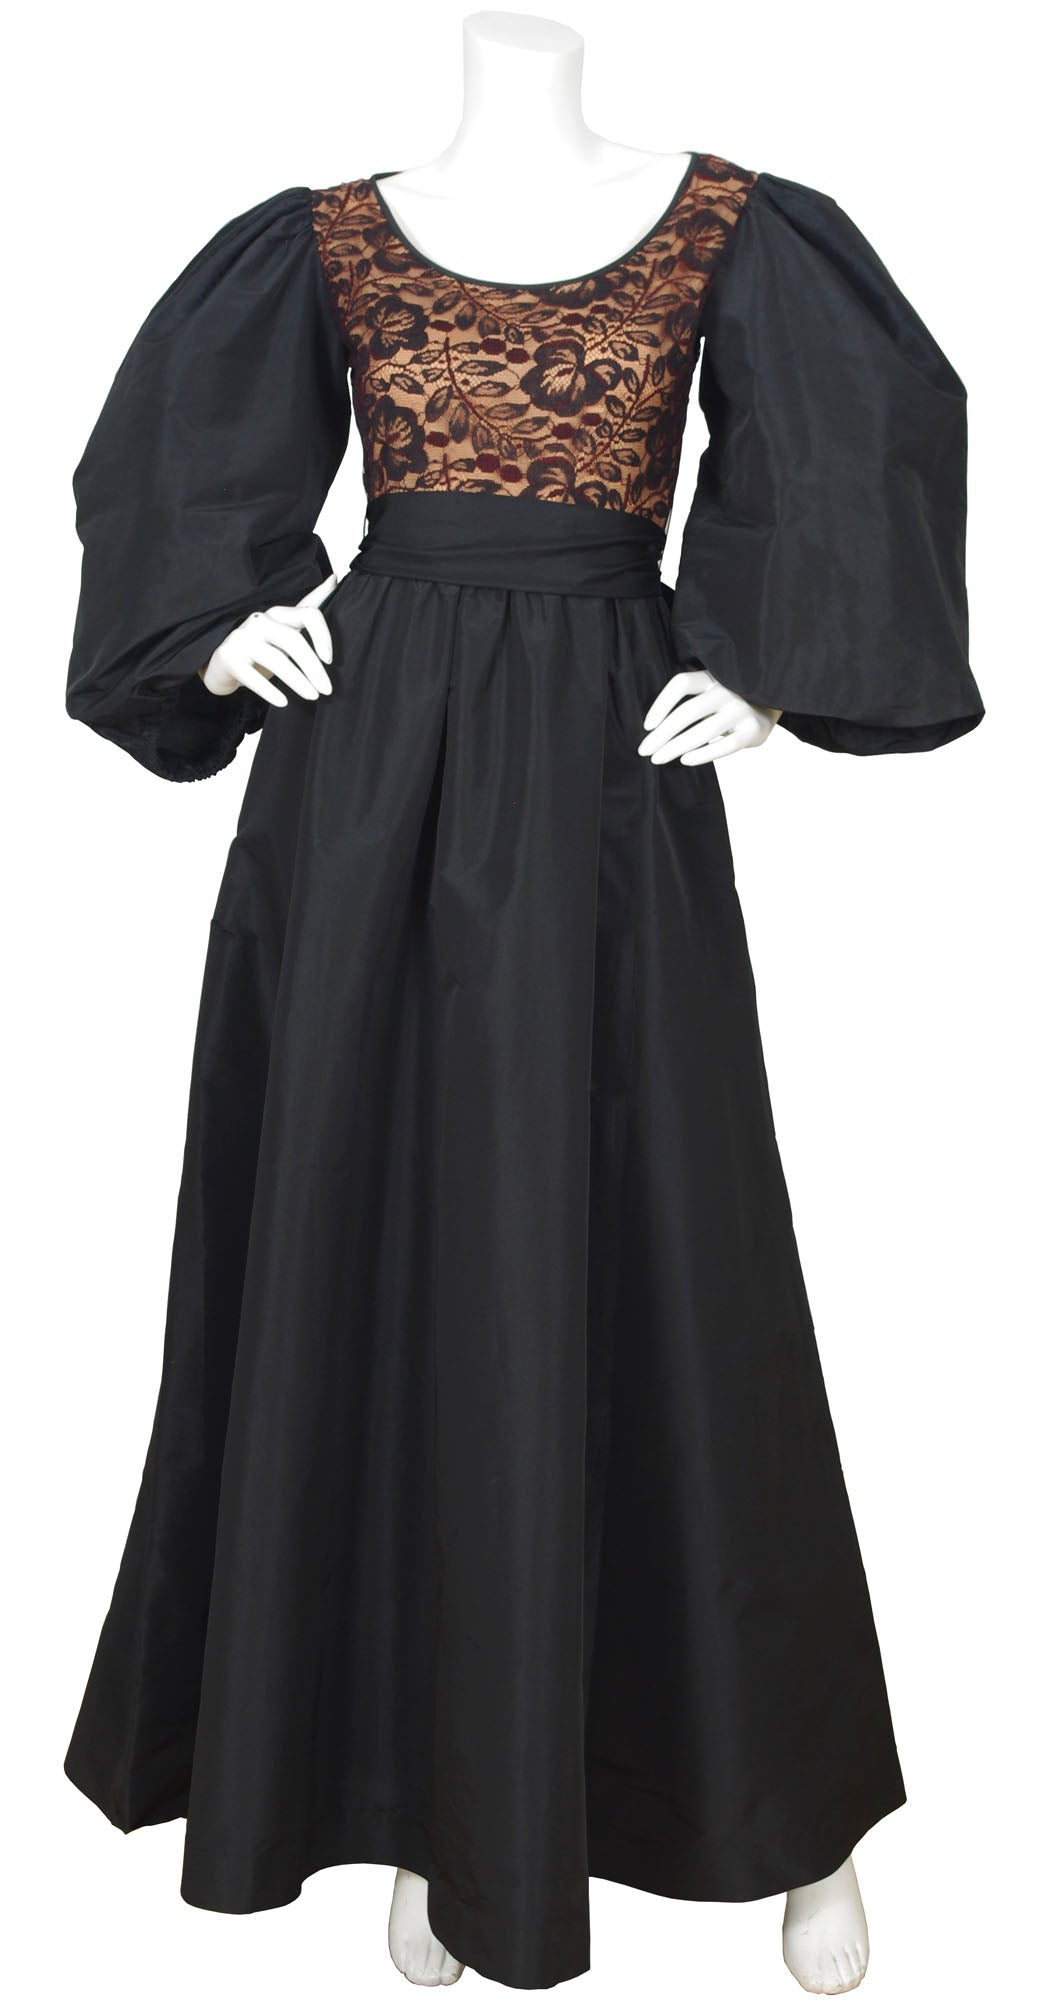 1970s Dramatic Balloon Sleeve Black Taffeta & Lace Gown